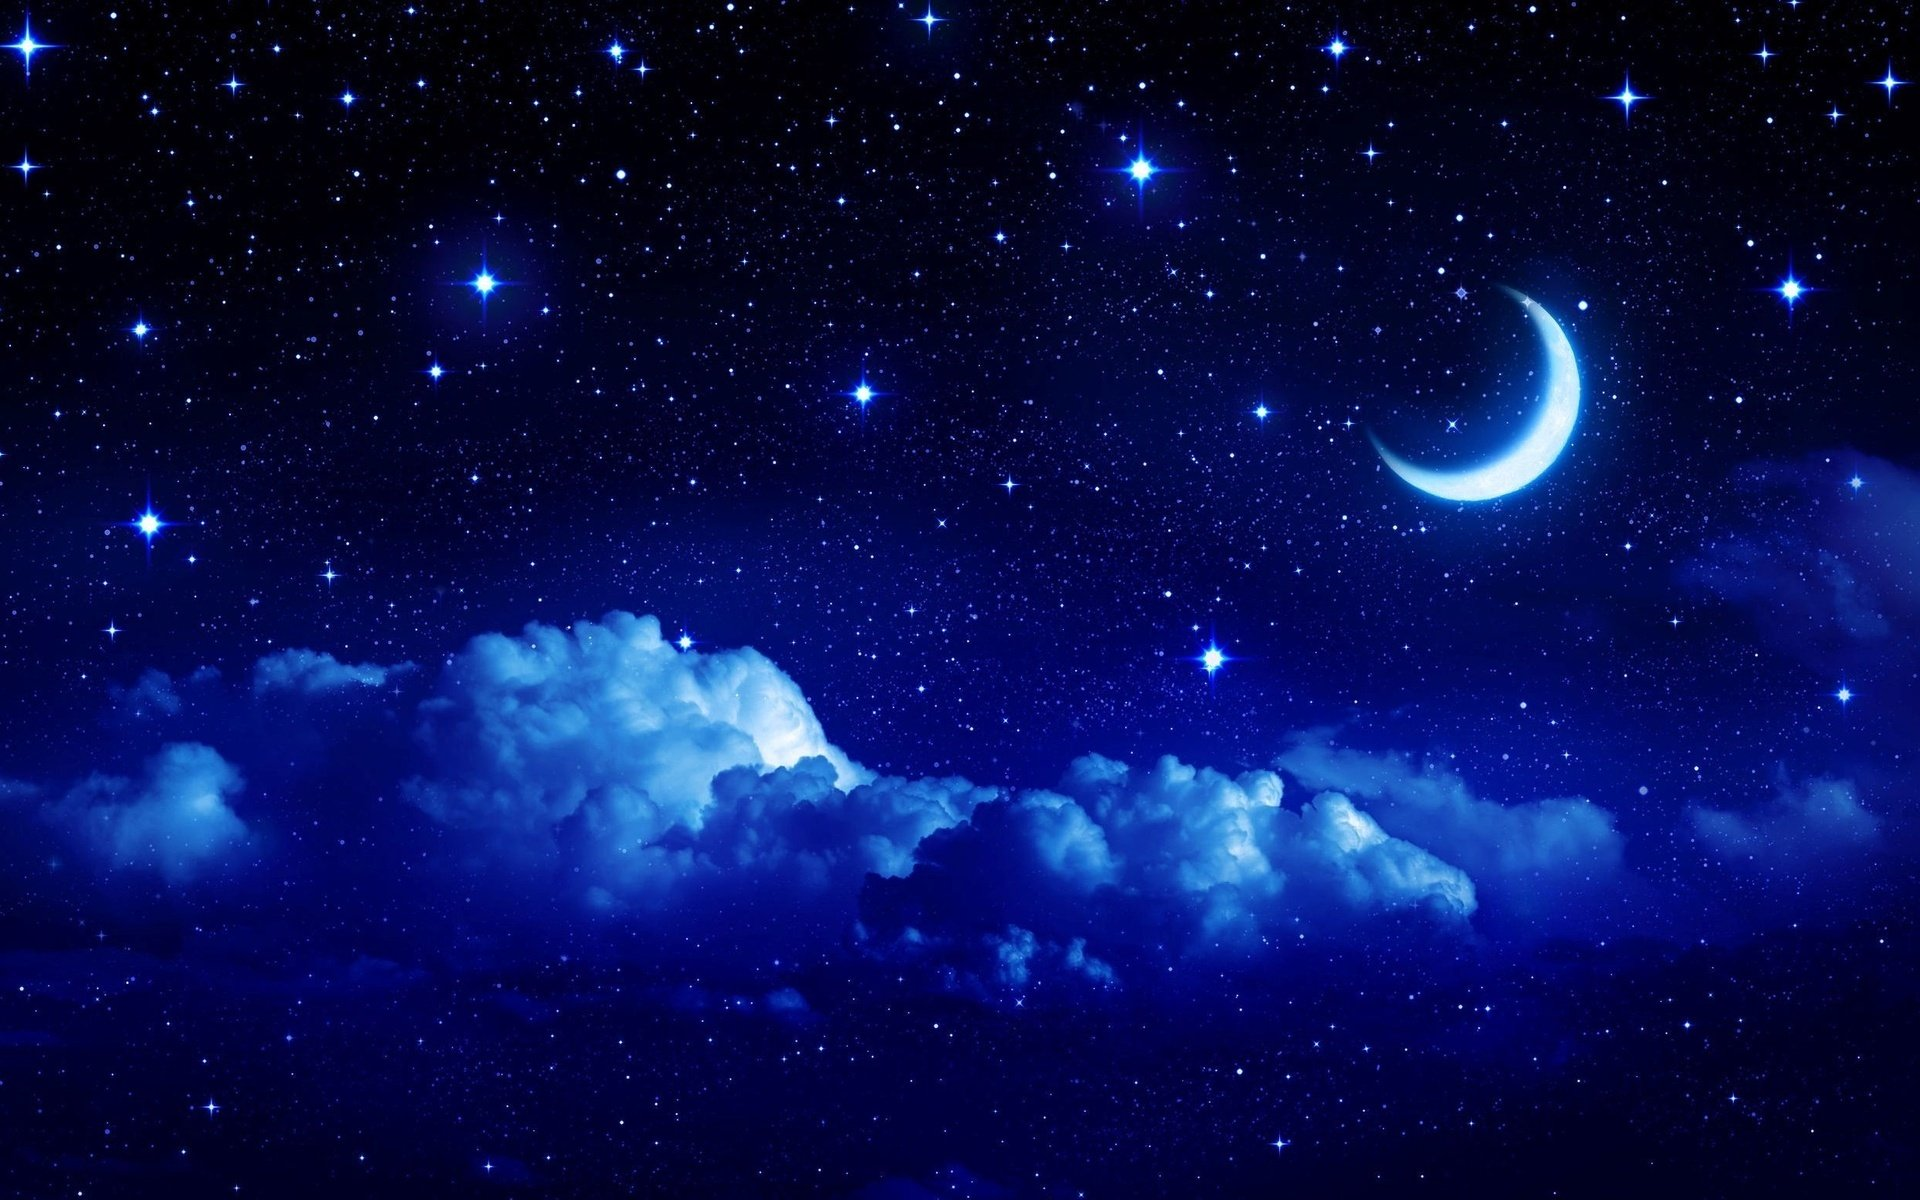 Night moon romance love stars sky clouds wallpaper | 1920x1200 | 848678 | WallpaperUP